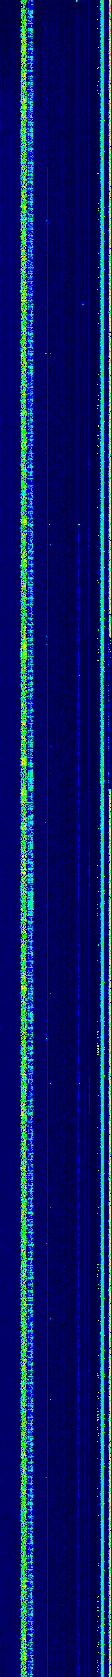 0698-0894 Mhz All lower GSM bands on the RF-Explorer in Republic